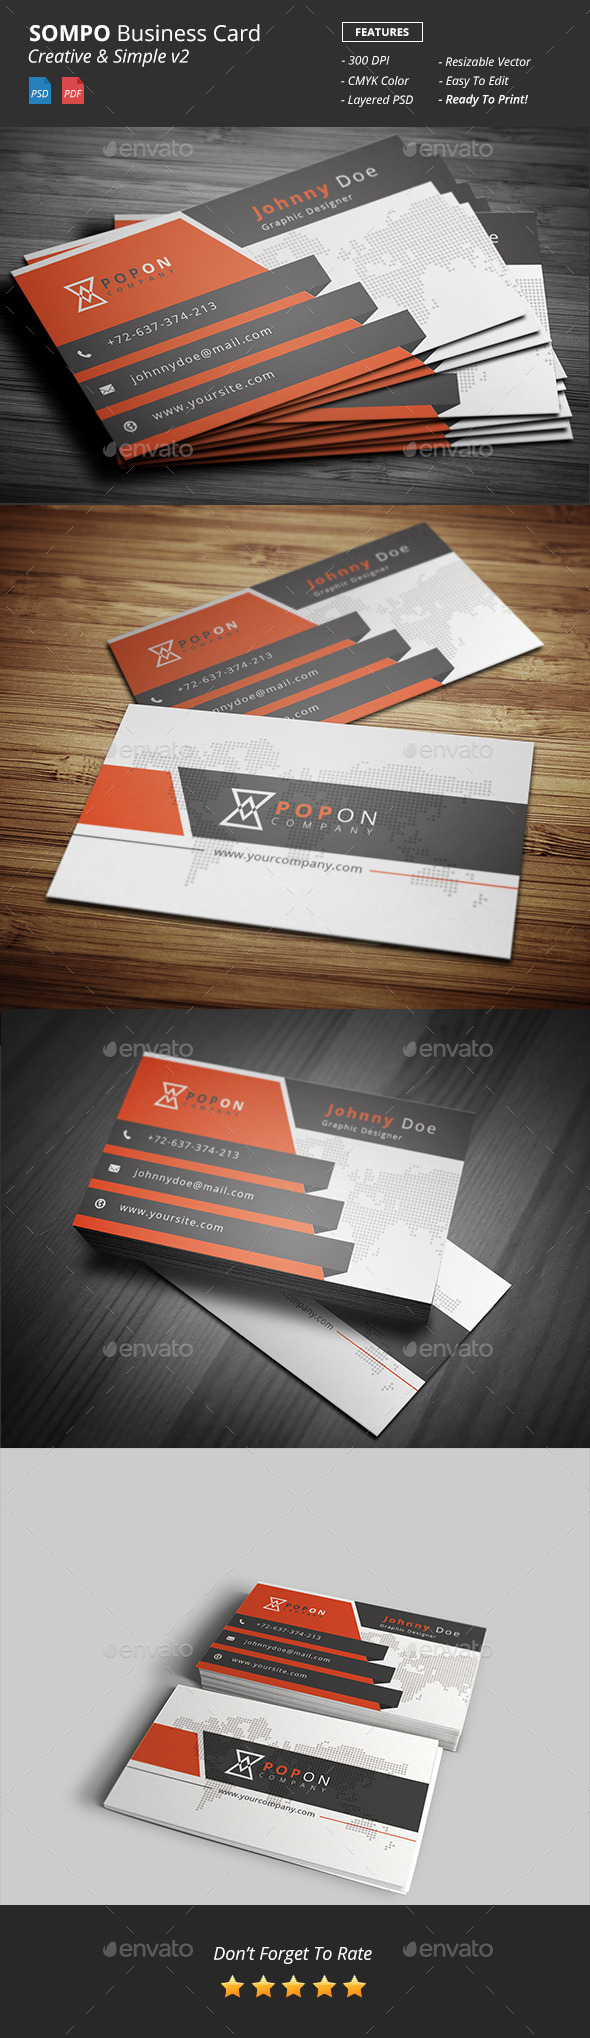 Sompo - Creative Bussiness Card Template v2 - Creative Business Cards